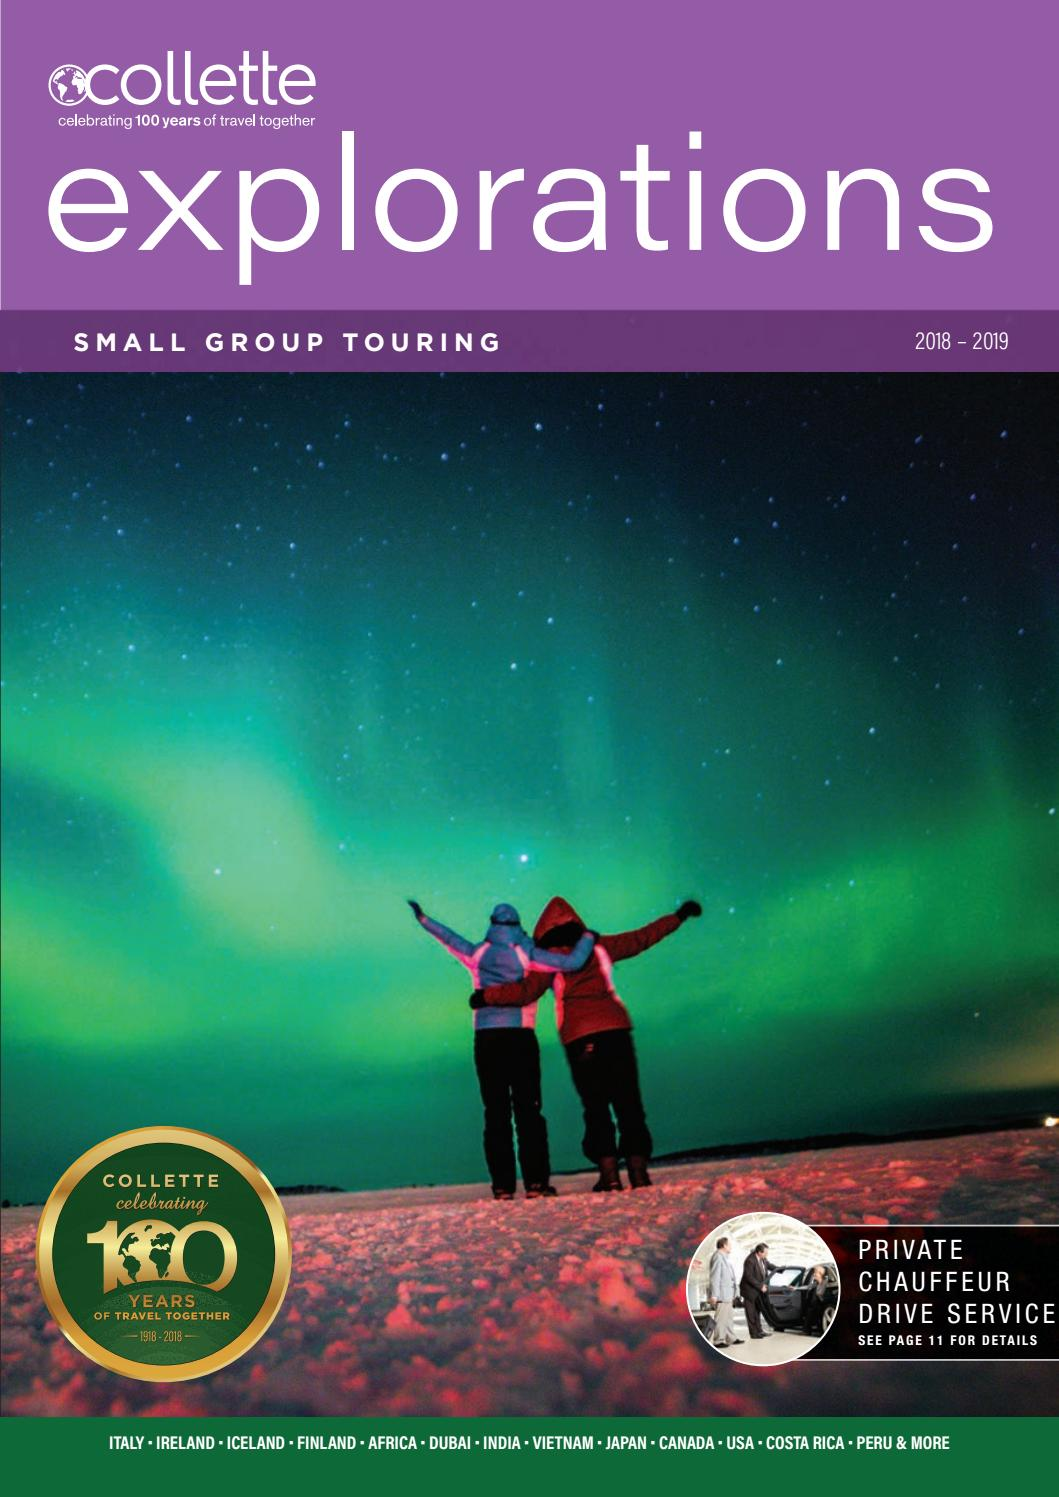 18 73tes explorations ebroch aud by Collette - issuu